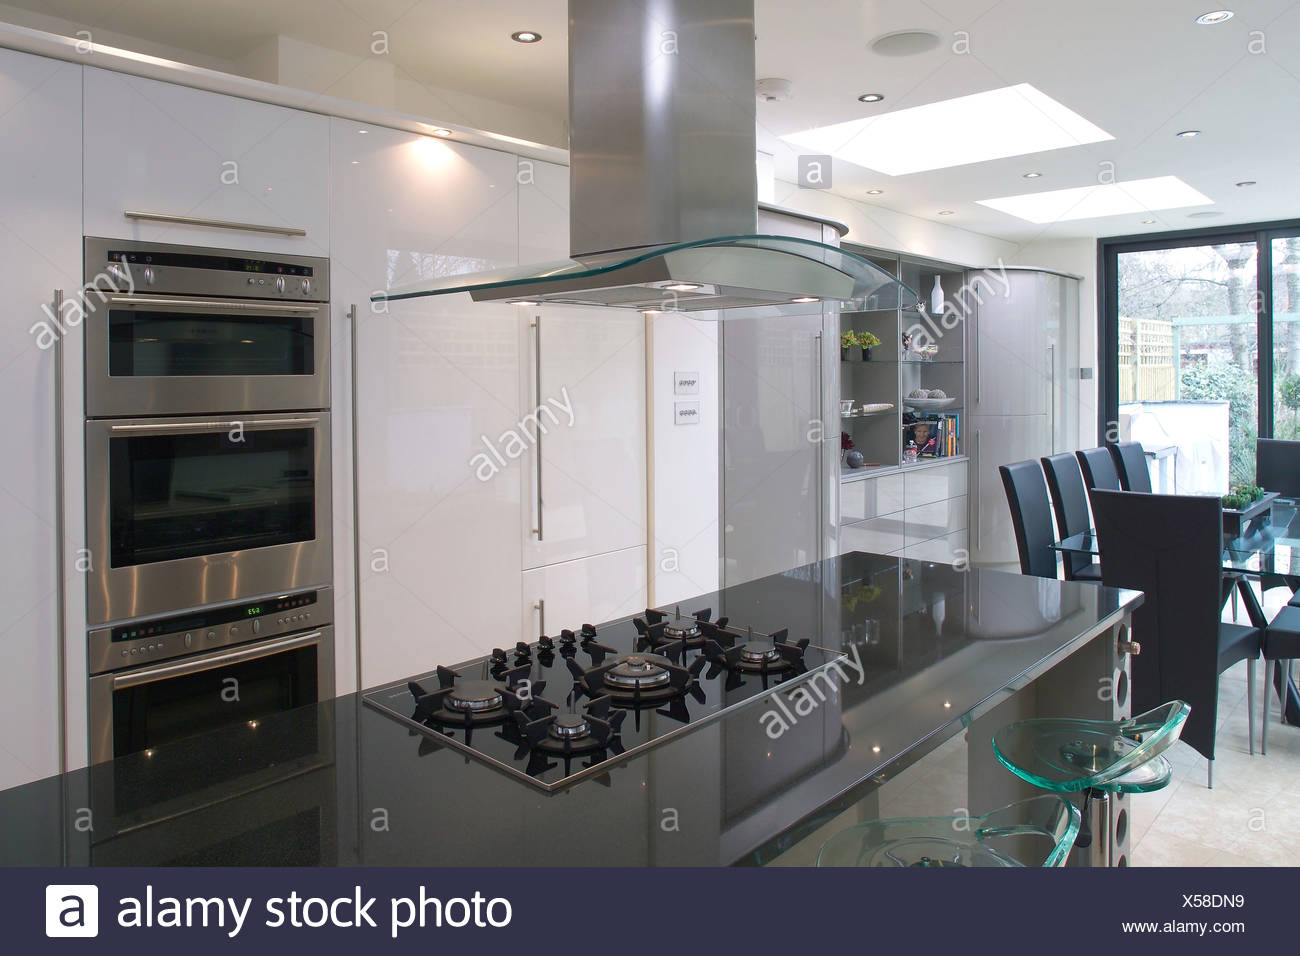 Extractor Fan Above Hob In Black Granite Island Unit In Modern Openplan Kitchen With Wall Mounted Oven Stock Photo Alamy